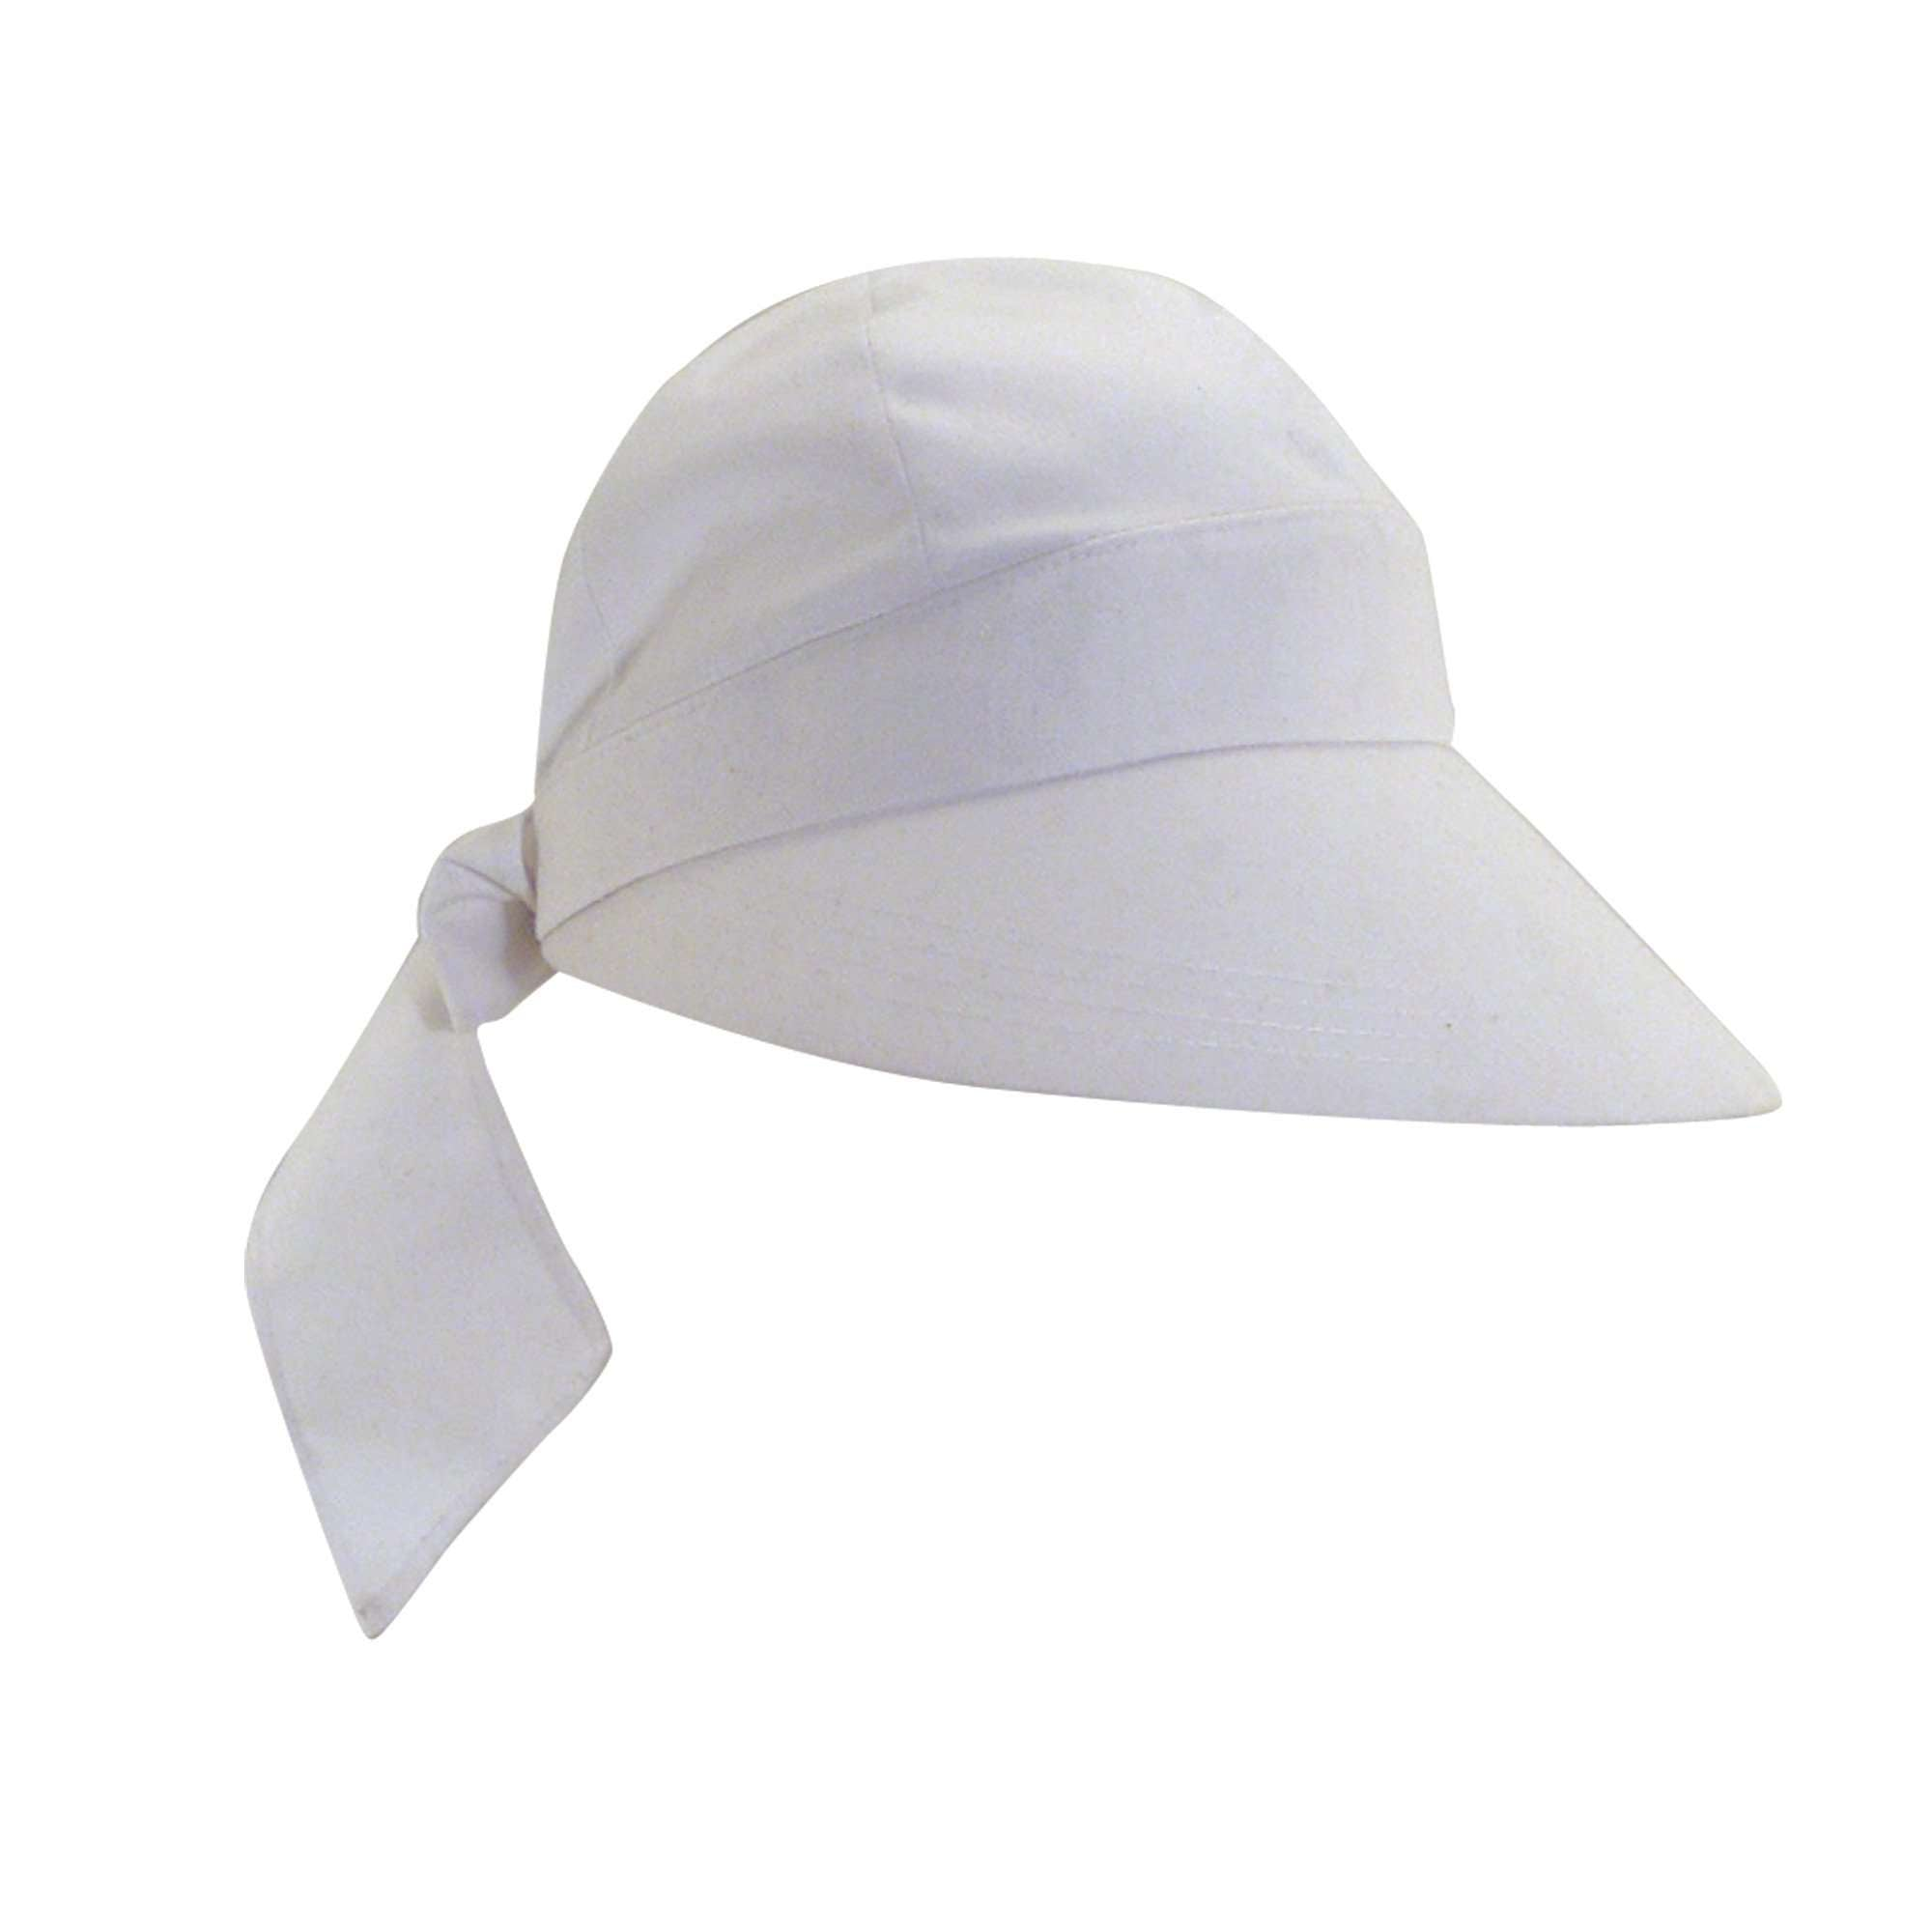 Scala Cotton Facesaver Cap with Bow - SetarTrading Hats